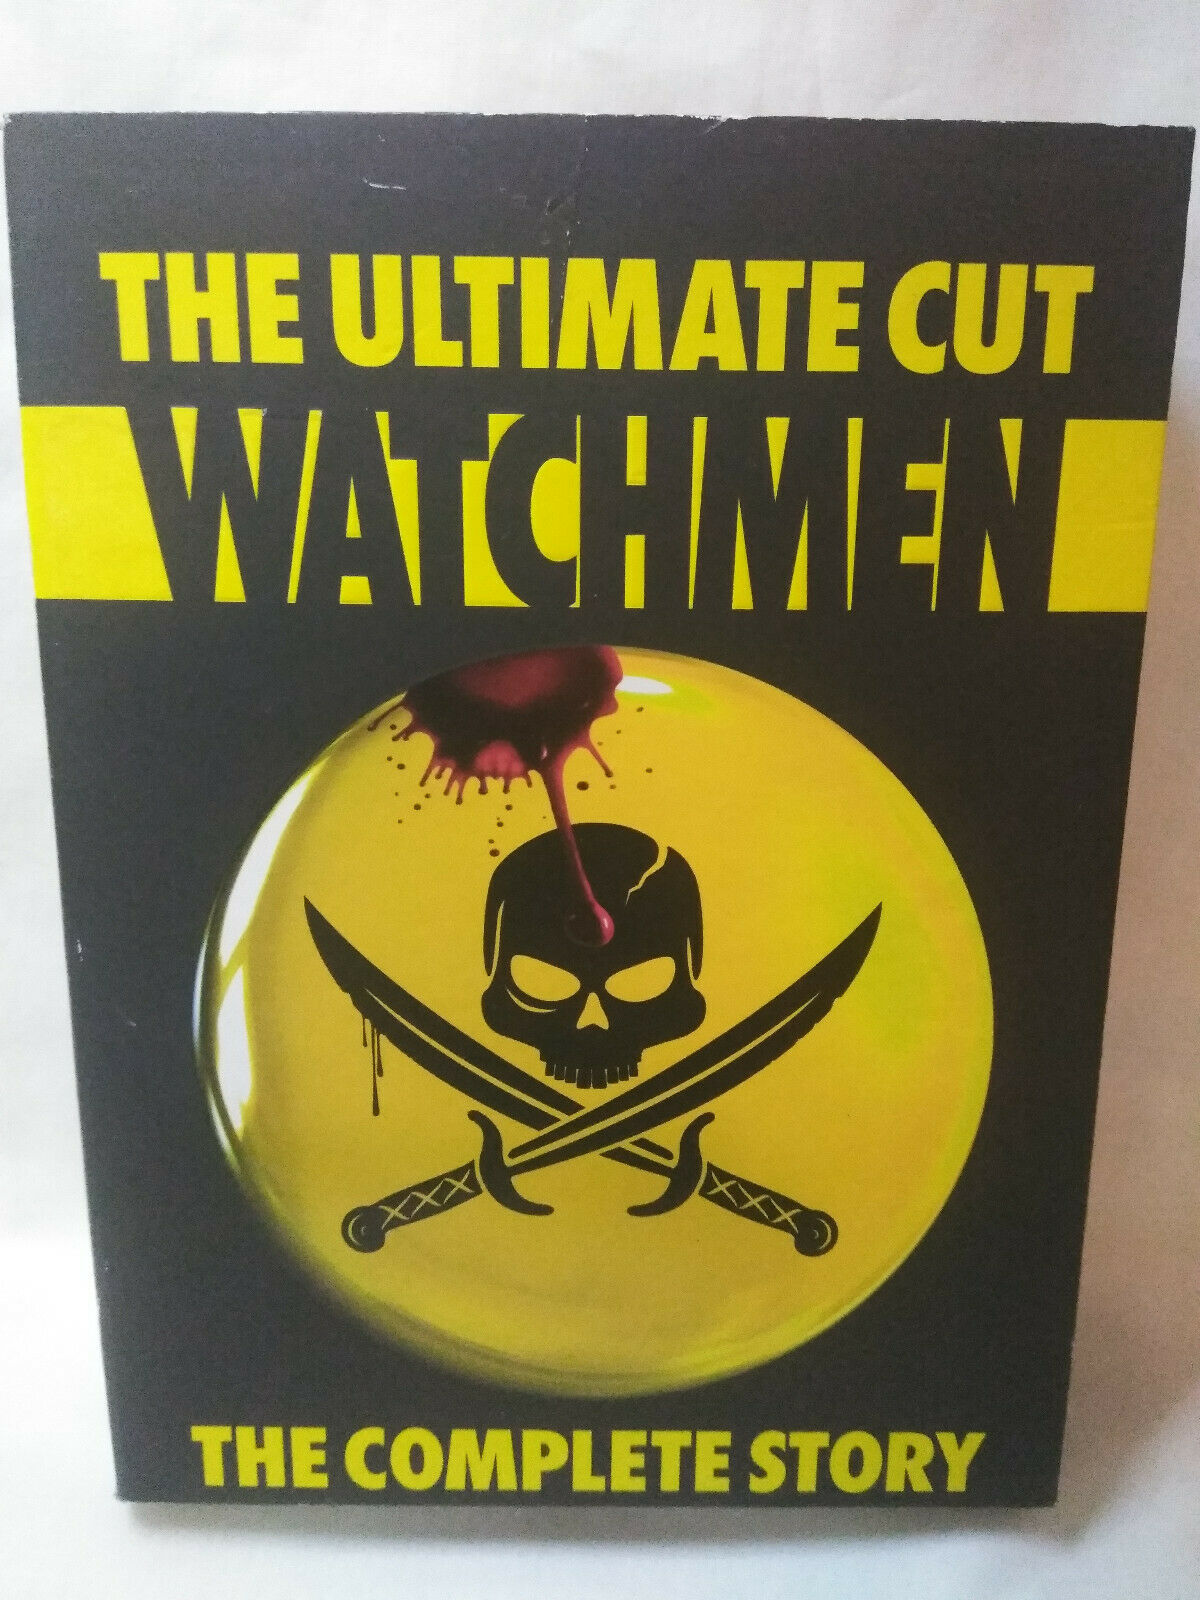 Watchmen--The ultimate cut The Complete Story 5 Discs image 2